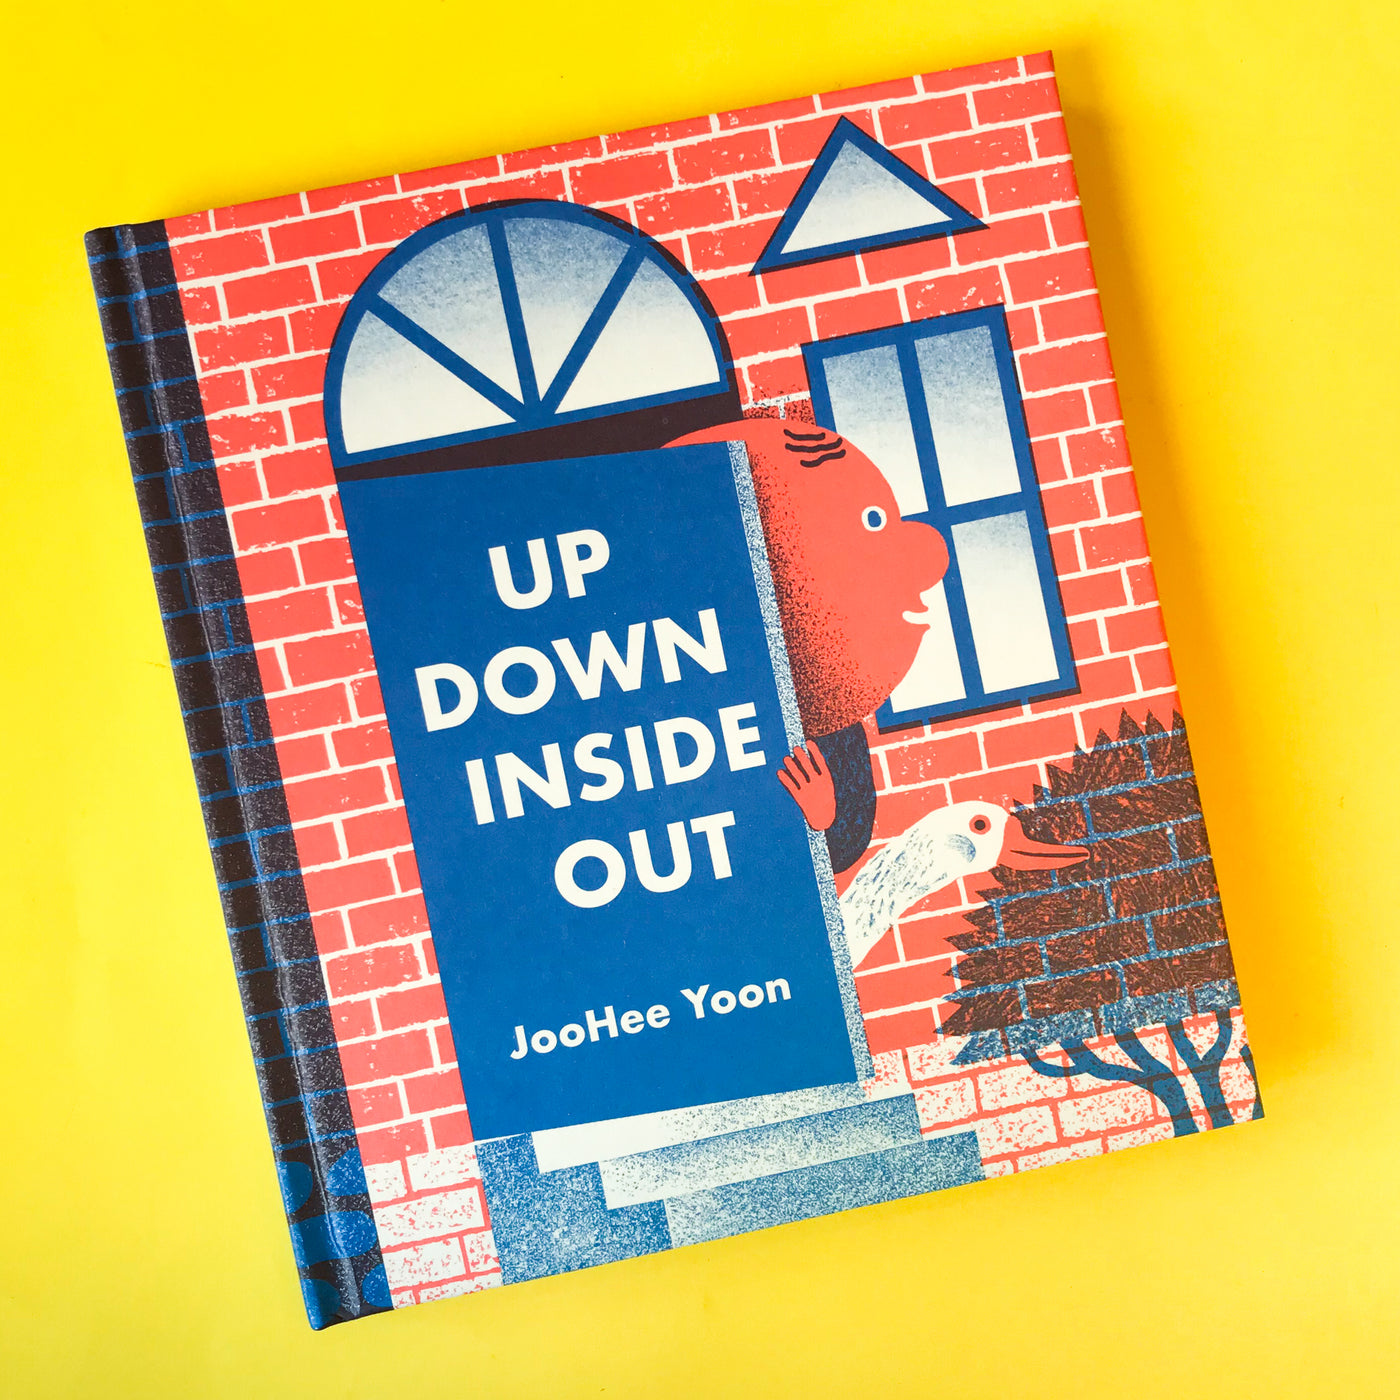 Up Down Inside Out by JooHee Yoon